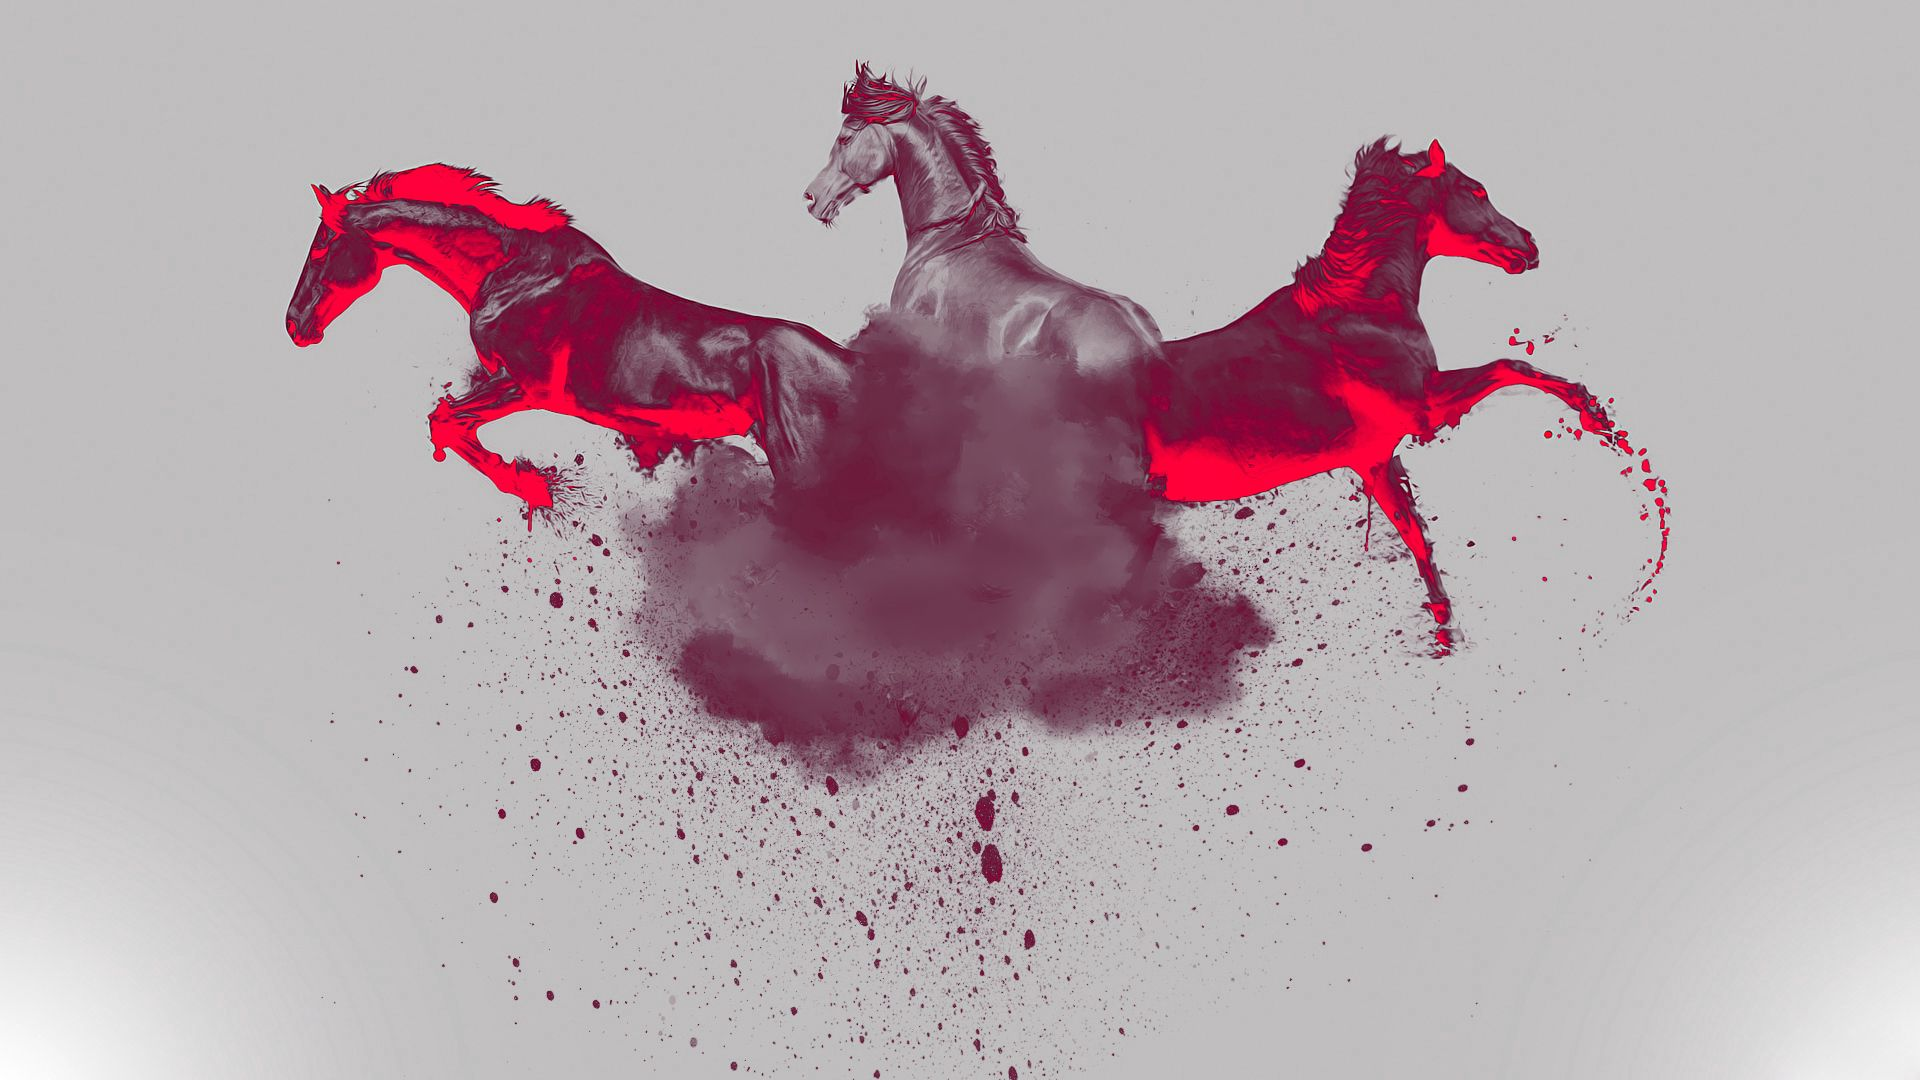 157960 download wallpaper Horses, Abstract, Spray, Paint screensavers and pictures for free